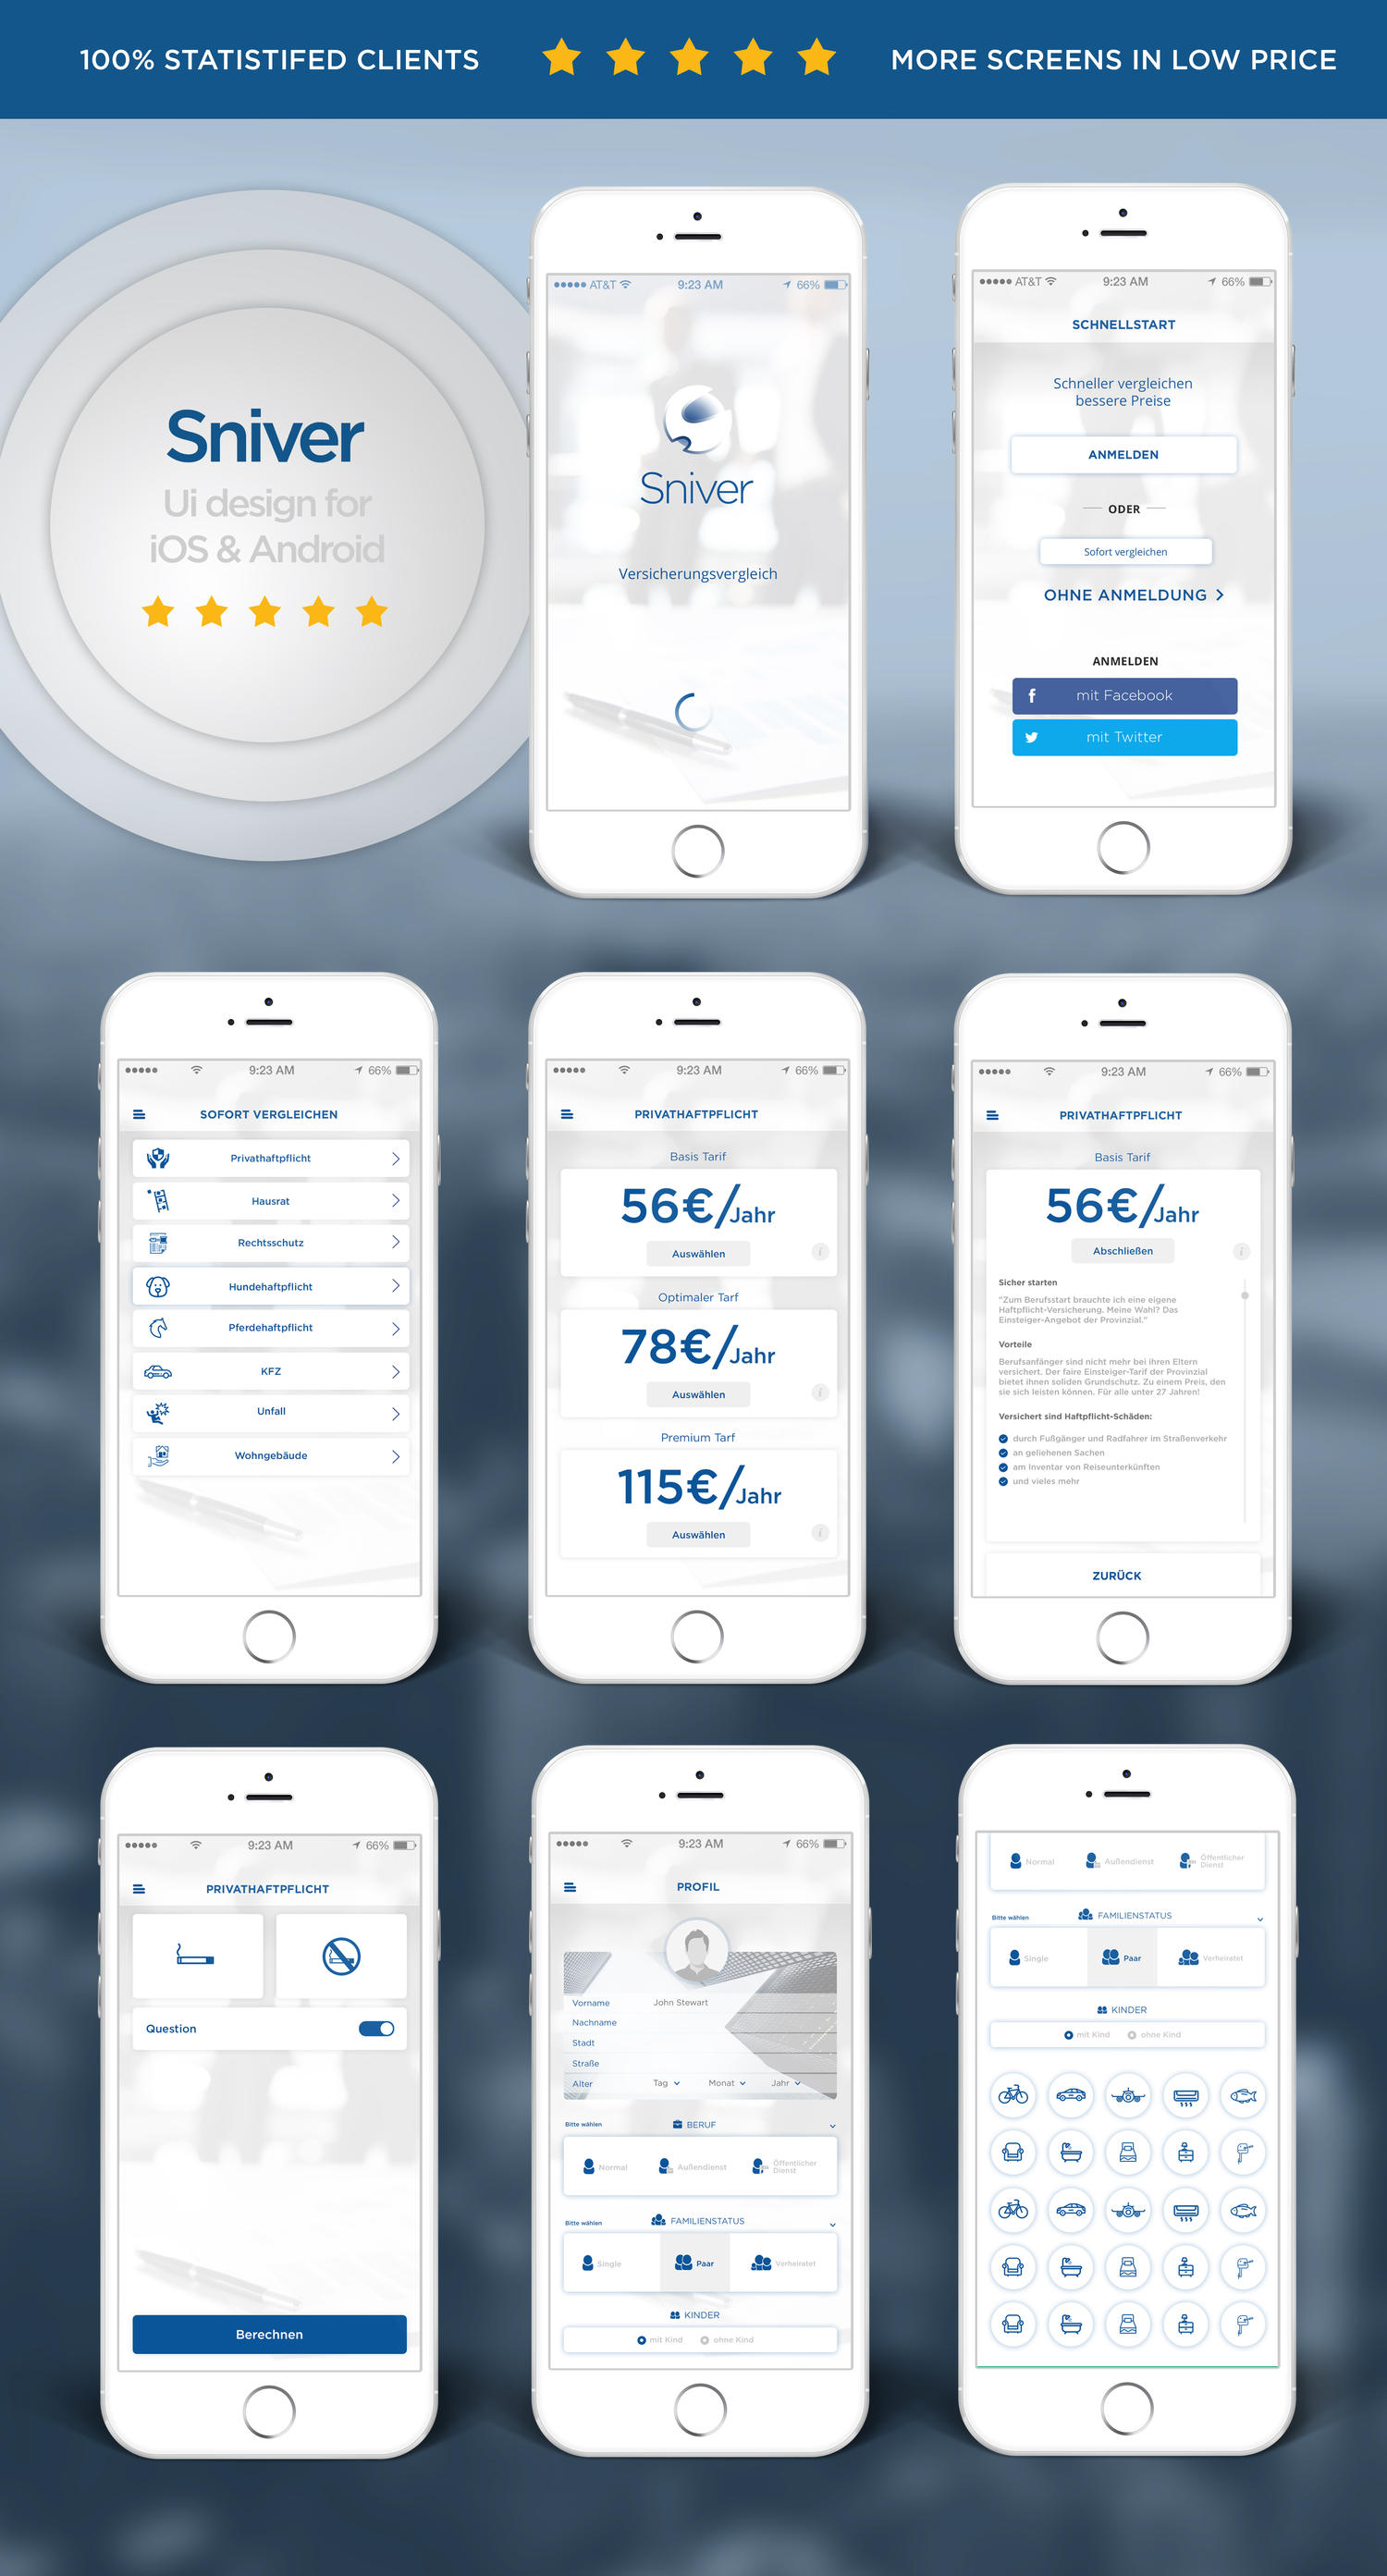 Premium Quality Mobile App Ui Design for IOS and Android by idesignera - 108424